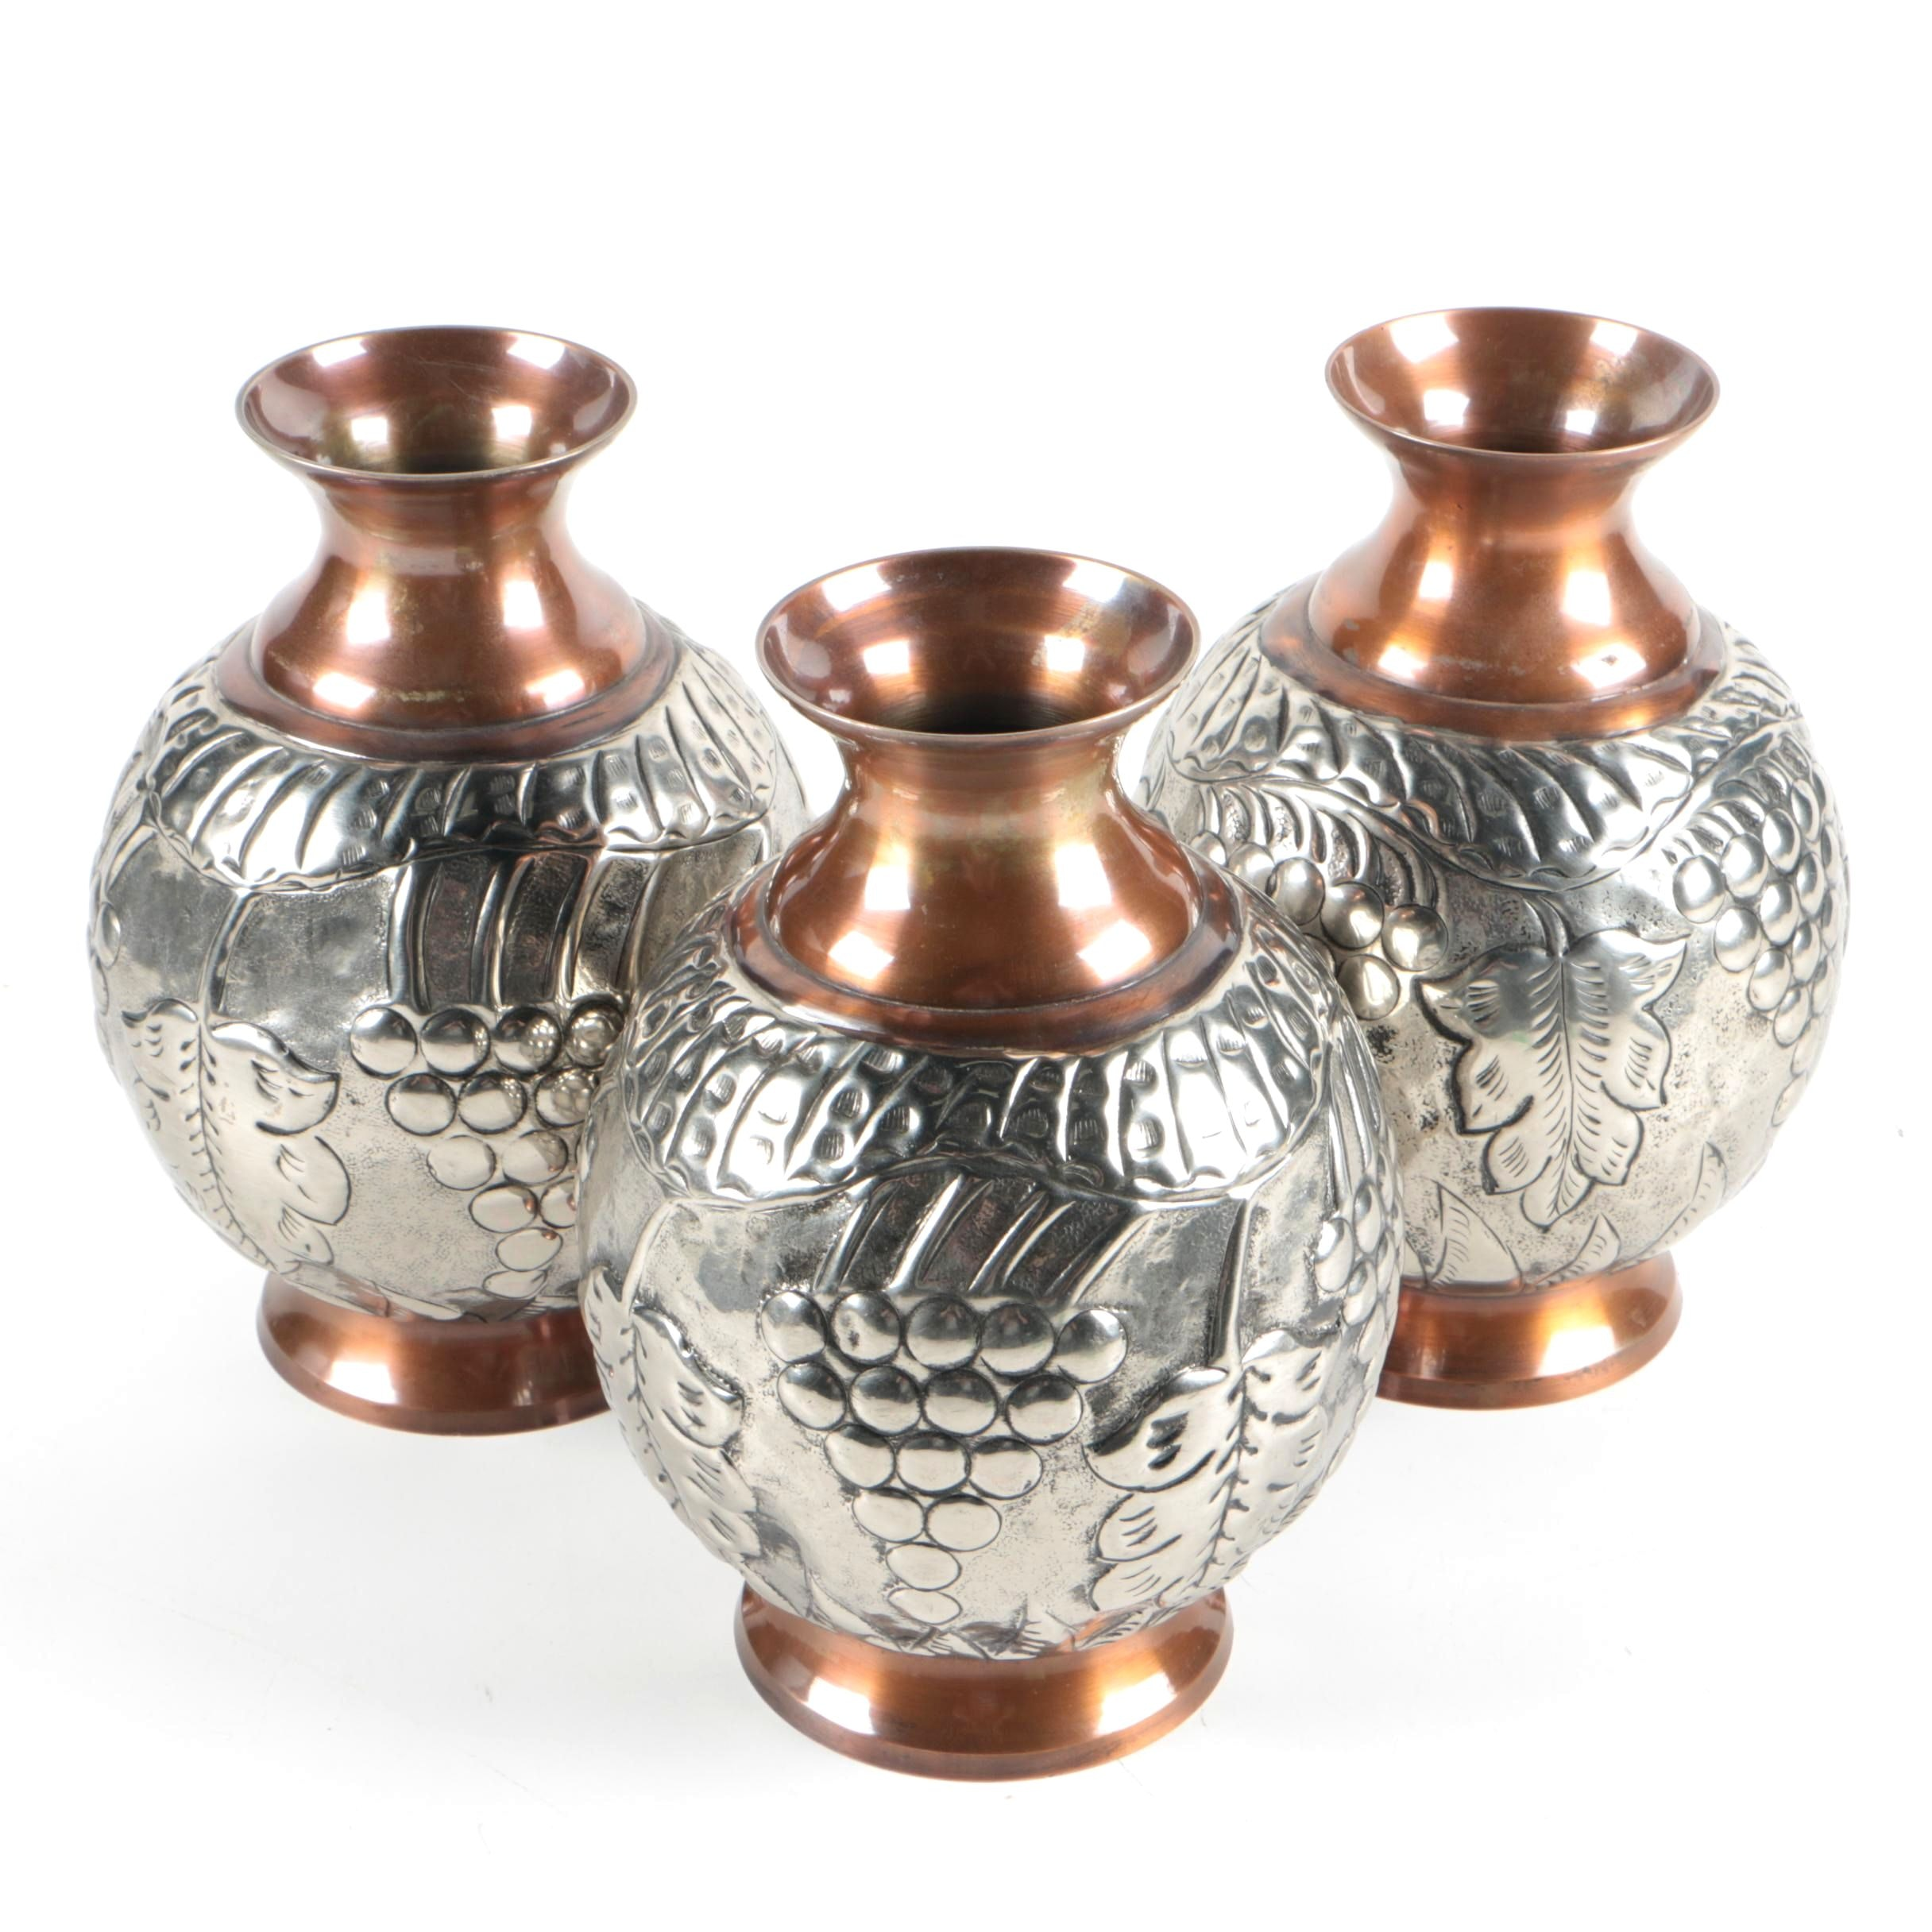 Copper and Metal Vases